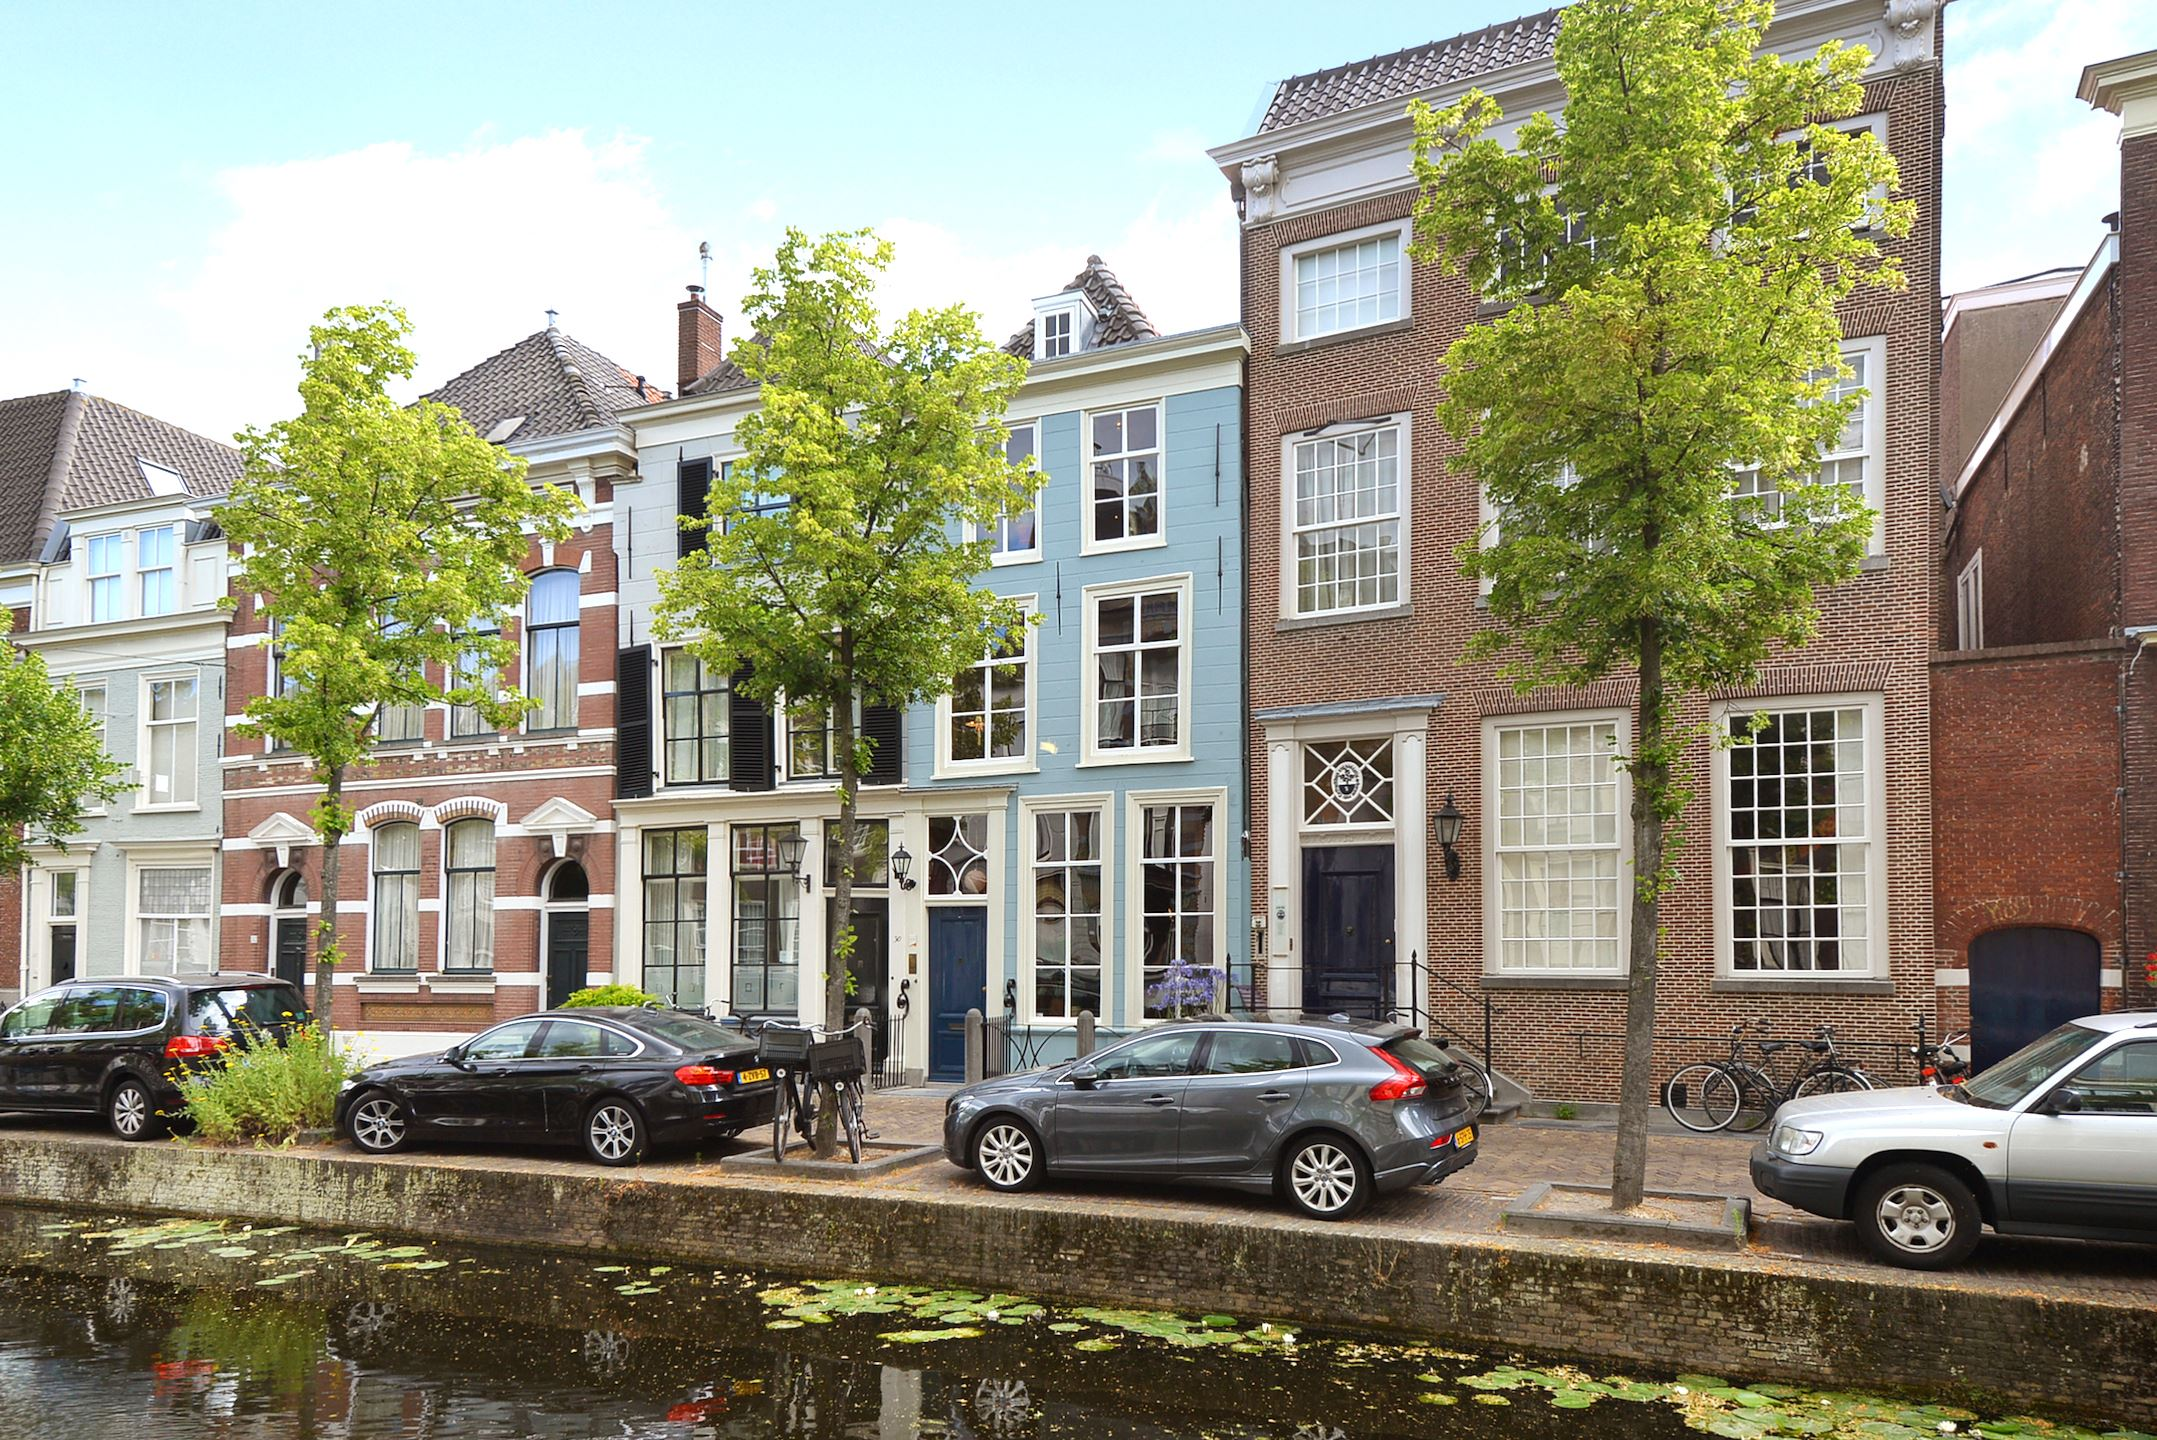 The Nordroom - A 17th-Century Canal Home in The Netherlands